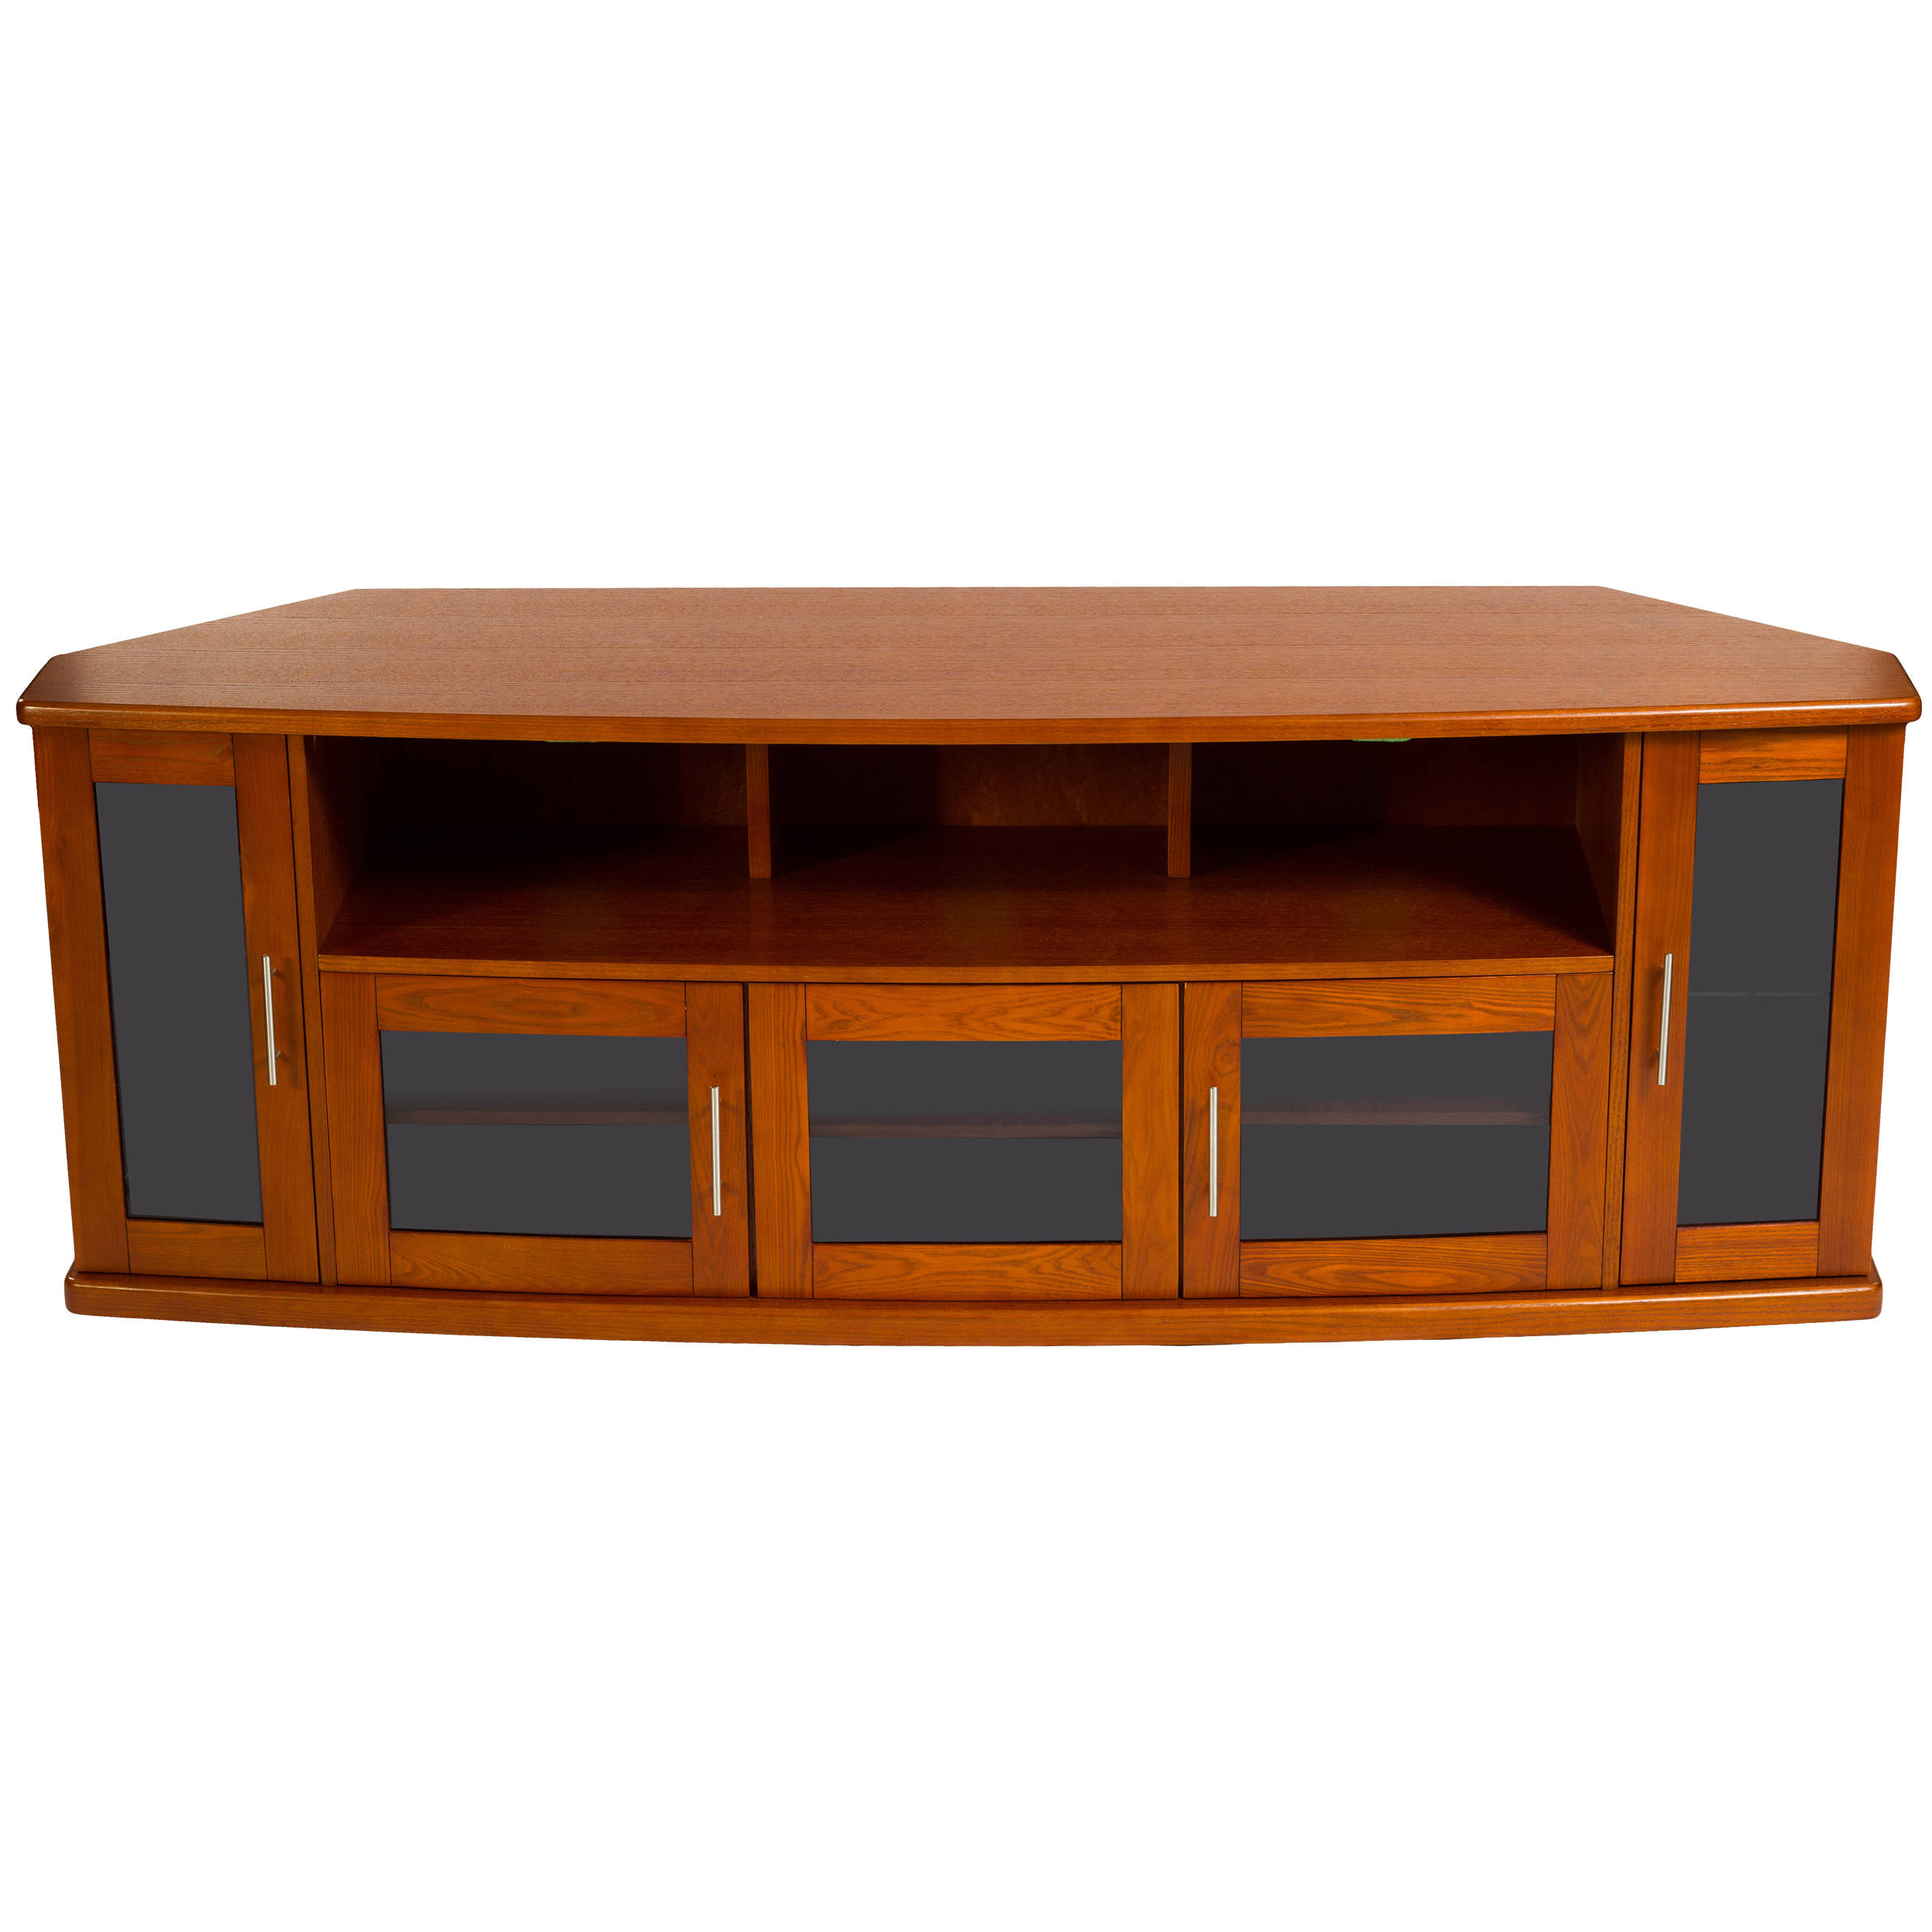 Best And Newest Walnut Corner Tv Stands With Regard To Plateau Newport 80 Corner Tv Stand (walnut) Newport 80 (w) B&h (View 3 of 20)